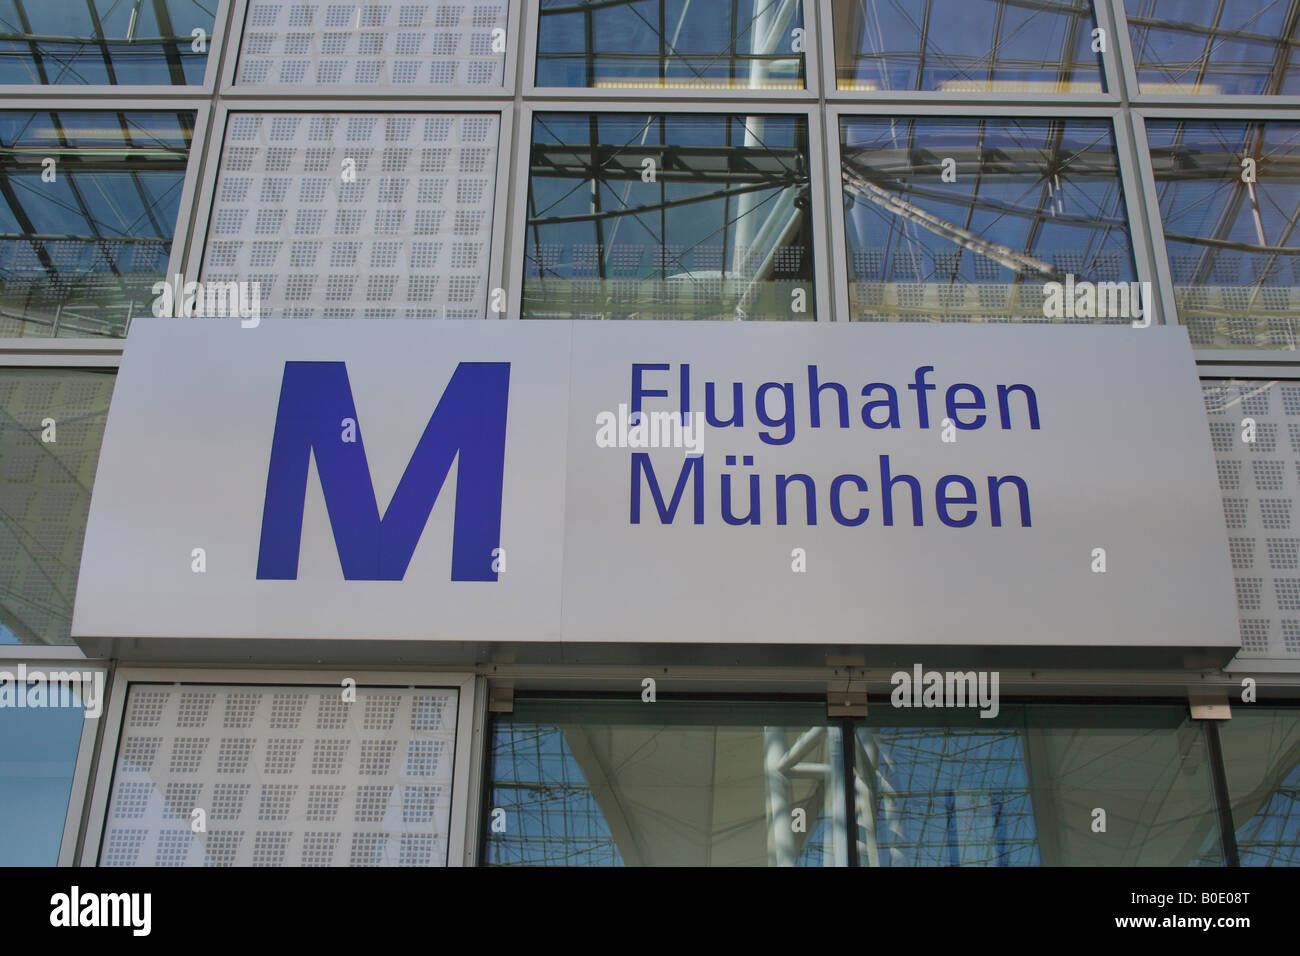 sign flughafen muenchen airport munich bavaria germany europe stock photo 17517944 alamy. Black Bedroom Furniture Sets. Home Design Ideas